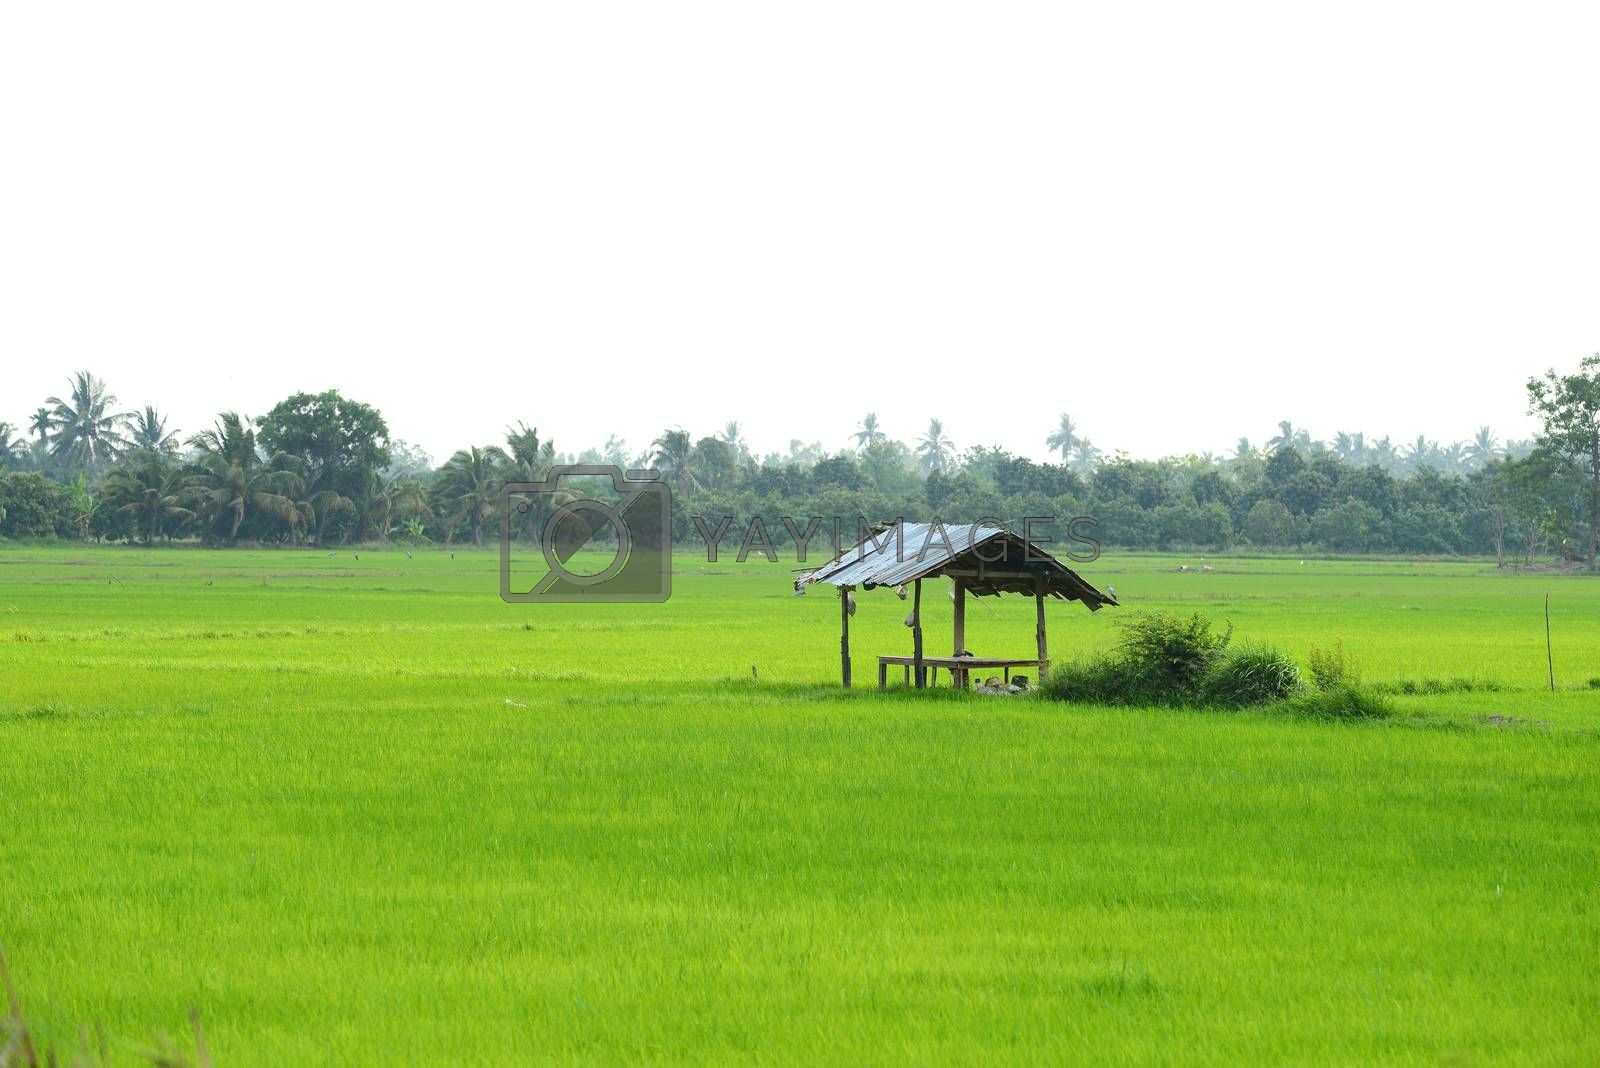 Royalty free image of paddy field and cottage by antpkr